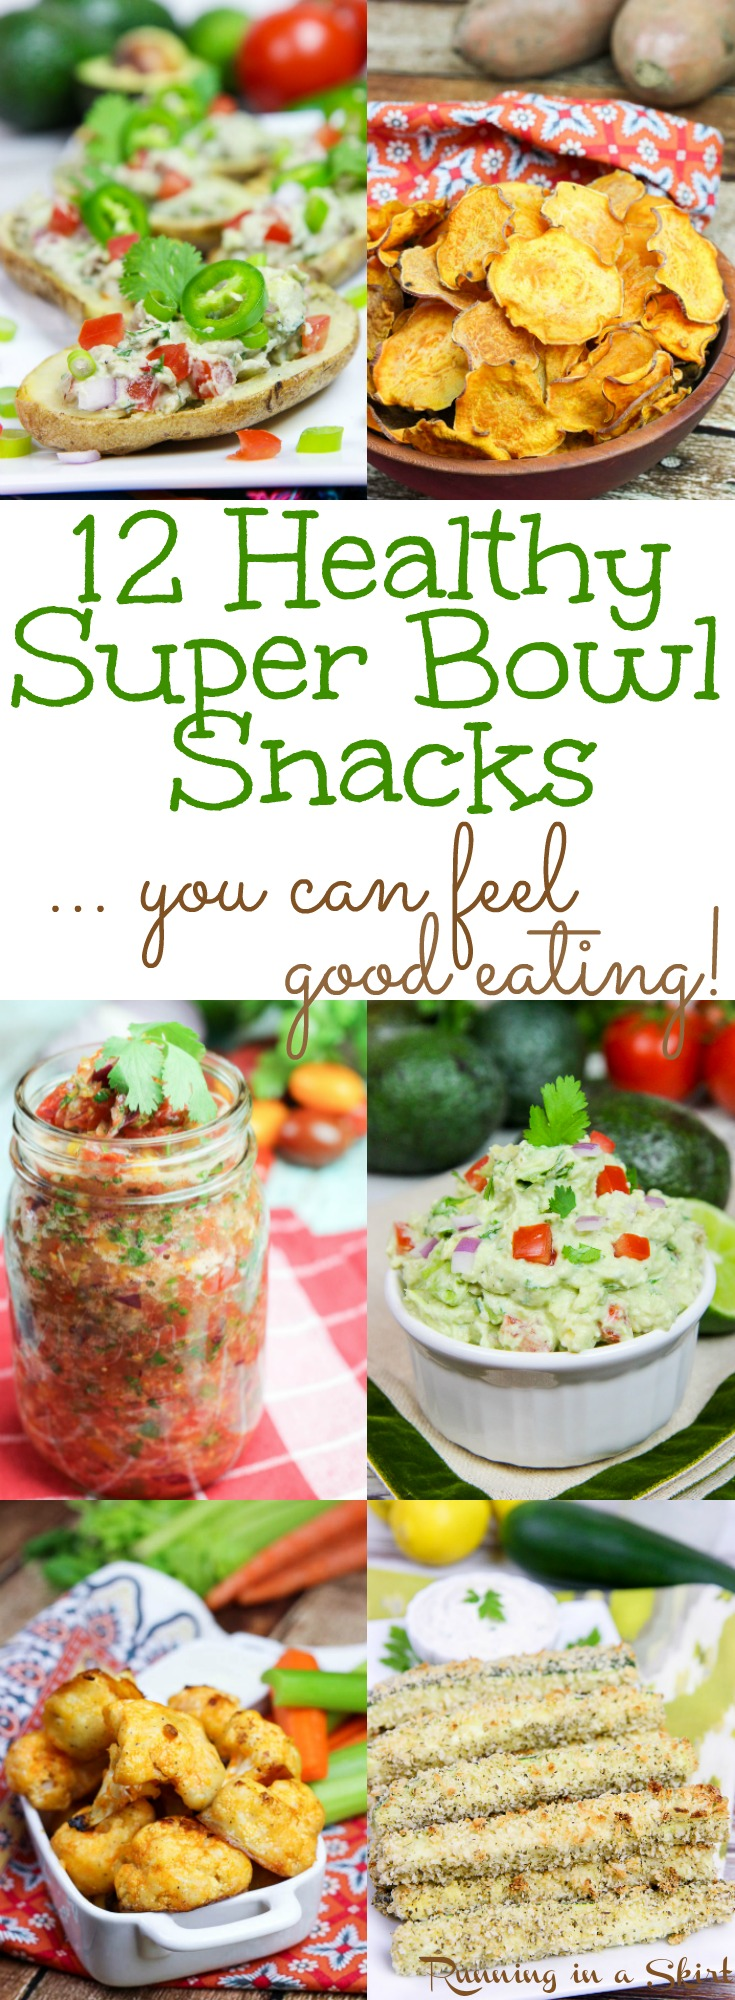 12 Vegetarian & Healthy Super Bowl Snacks. These are game day recipes and appetizer ideas you can actually feel good eating. The list is made up of clean eating vegetarian recipes with vegan - dairy free options. From appetizer, dips, sauces, treats and sweets- this list has all the food your need for your football party! via @juliewunder